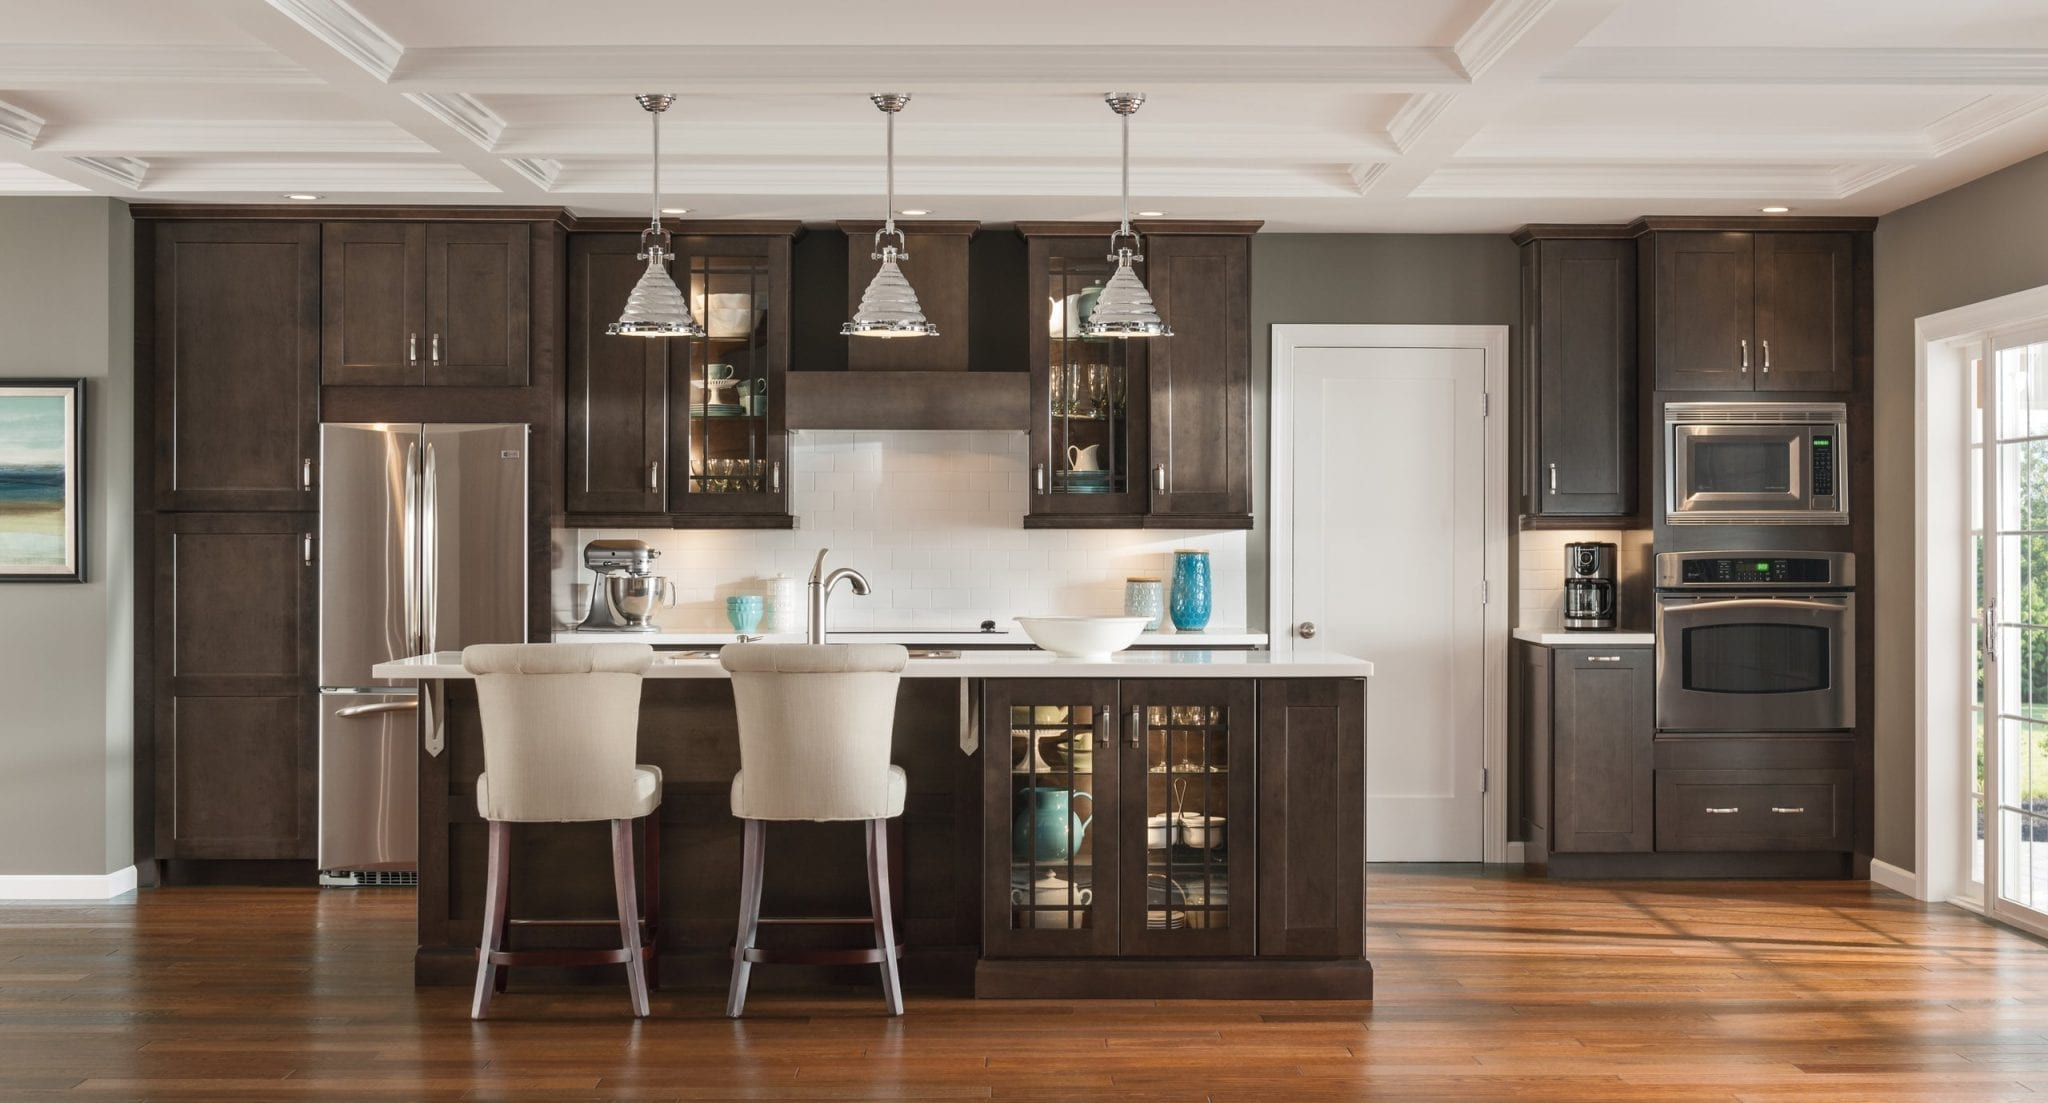 Of Cabinetry Options No Box S Can Accomplish What We Do Engrained Has The Experience And Capacity To Make Your Dream Kitchen A Reality